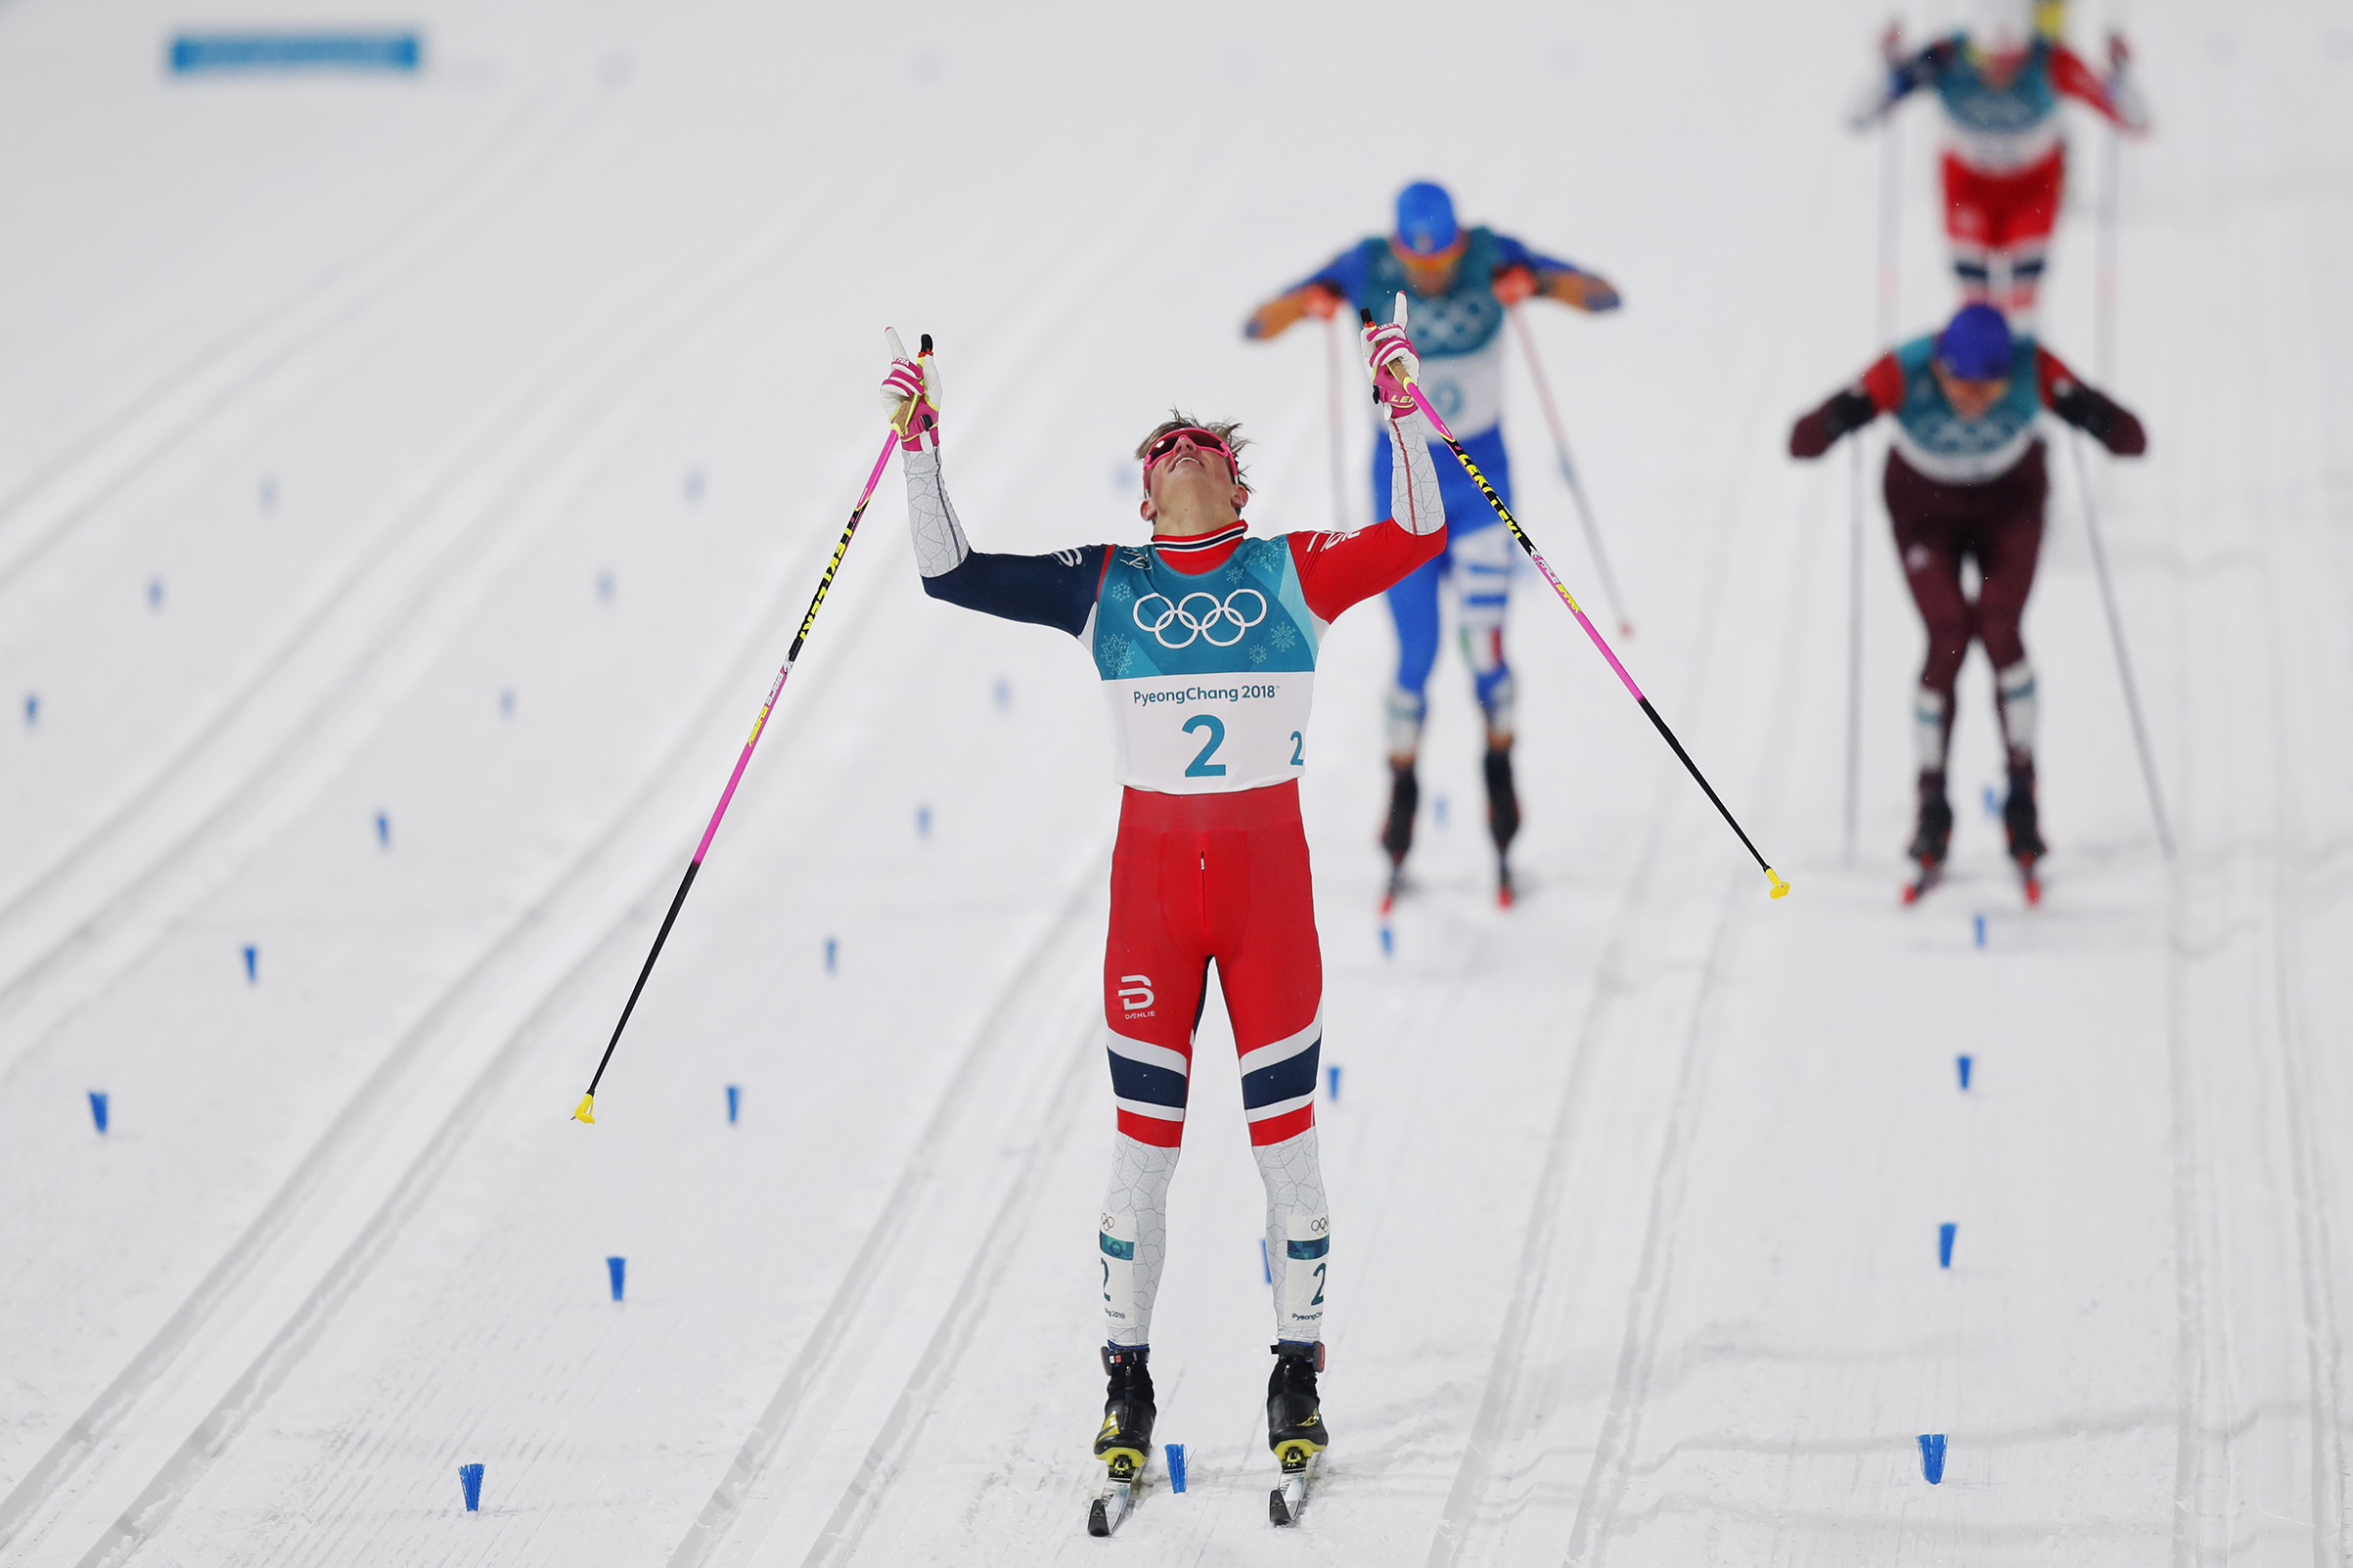 Johannes Hoesflot Klaebo of Norway celebrates after the victory during the Mens Individual Sprint Classic Finals on Feb. 13, 2018.